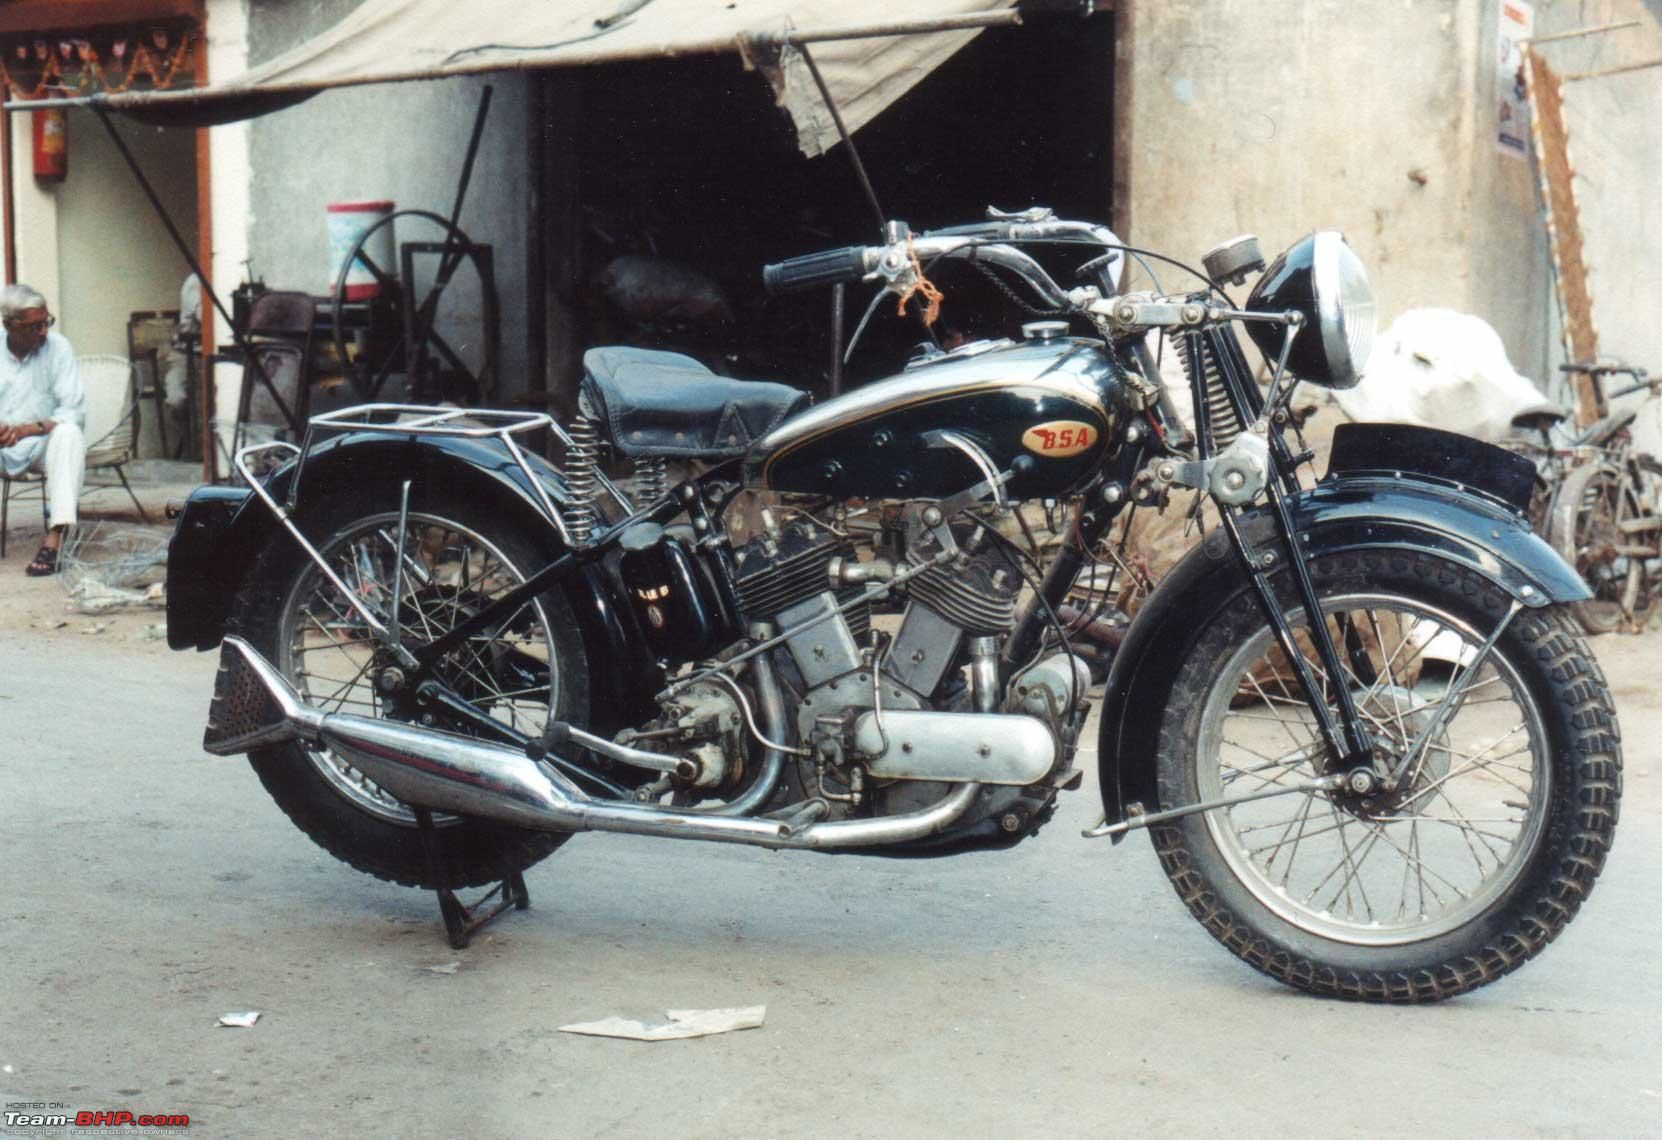 B S A G14 Bsa Motorcycle Classic Motorcycles Classic Bikes